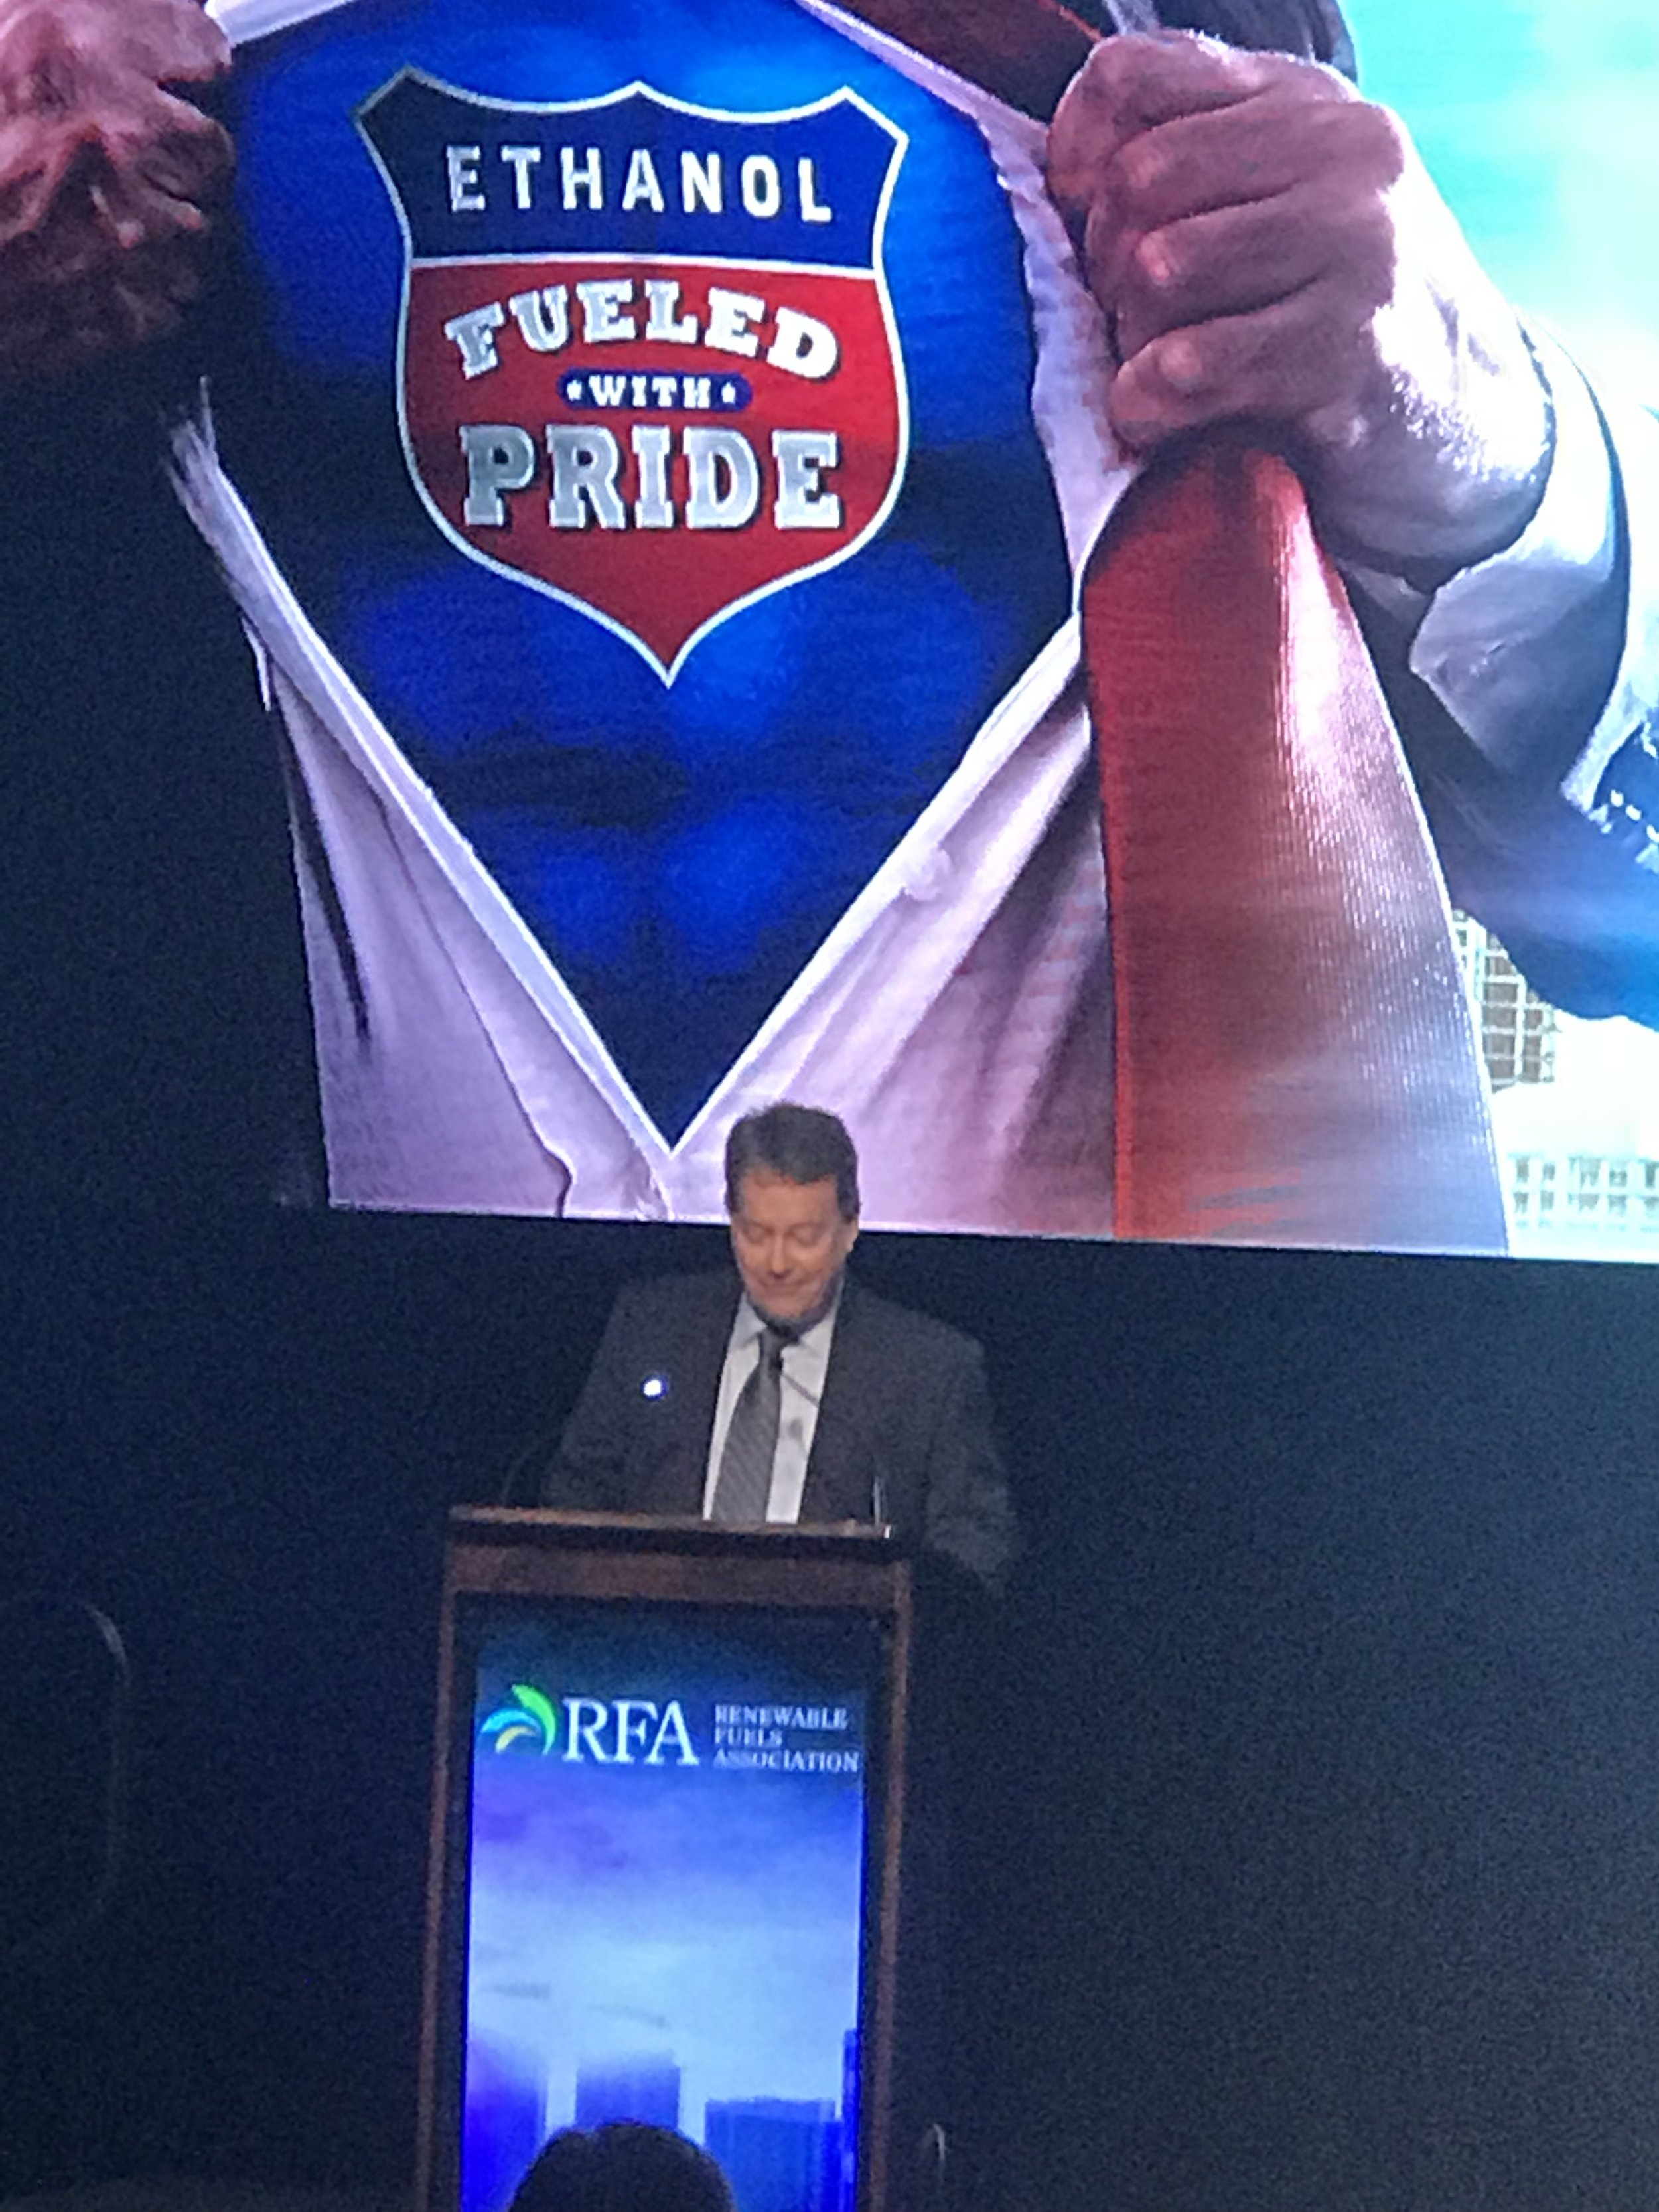 KY Kickoff - Commonwealth Agri-Energy General Manager Mick Henderson provided opening remarks as RFA Chairman.